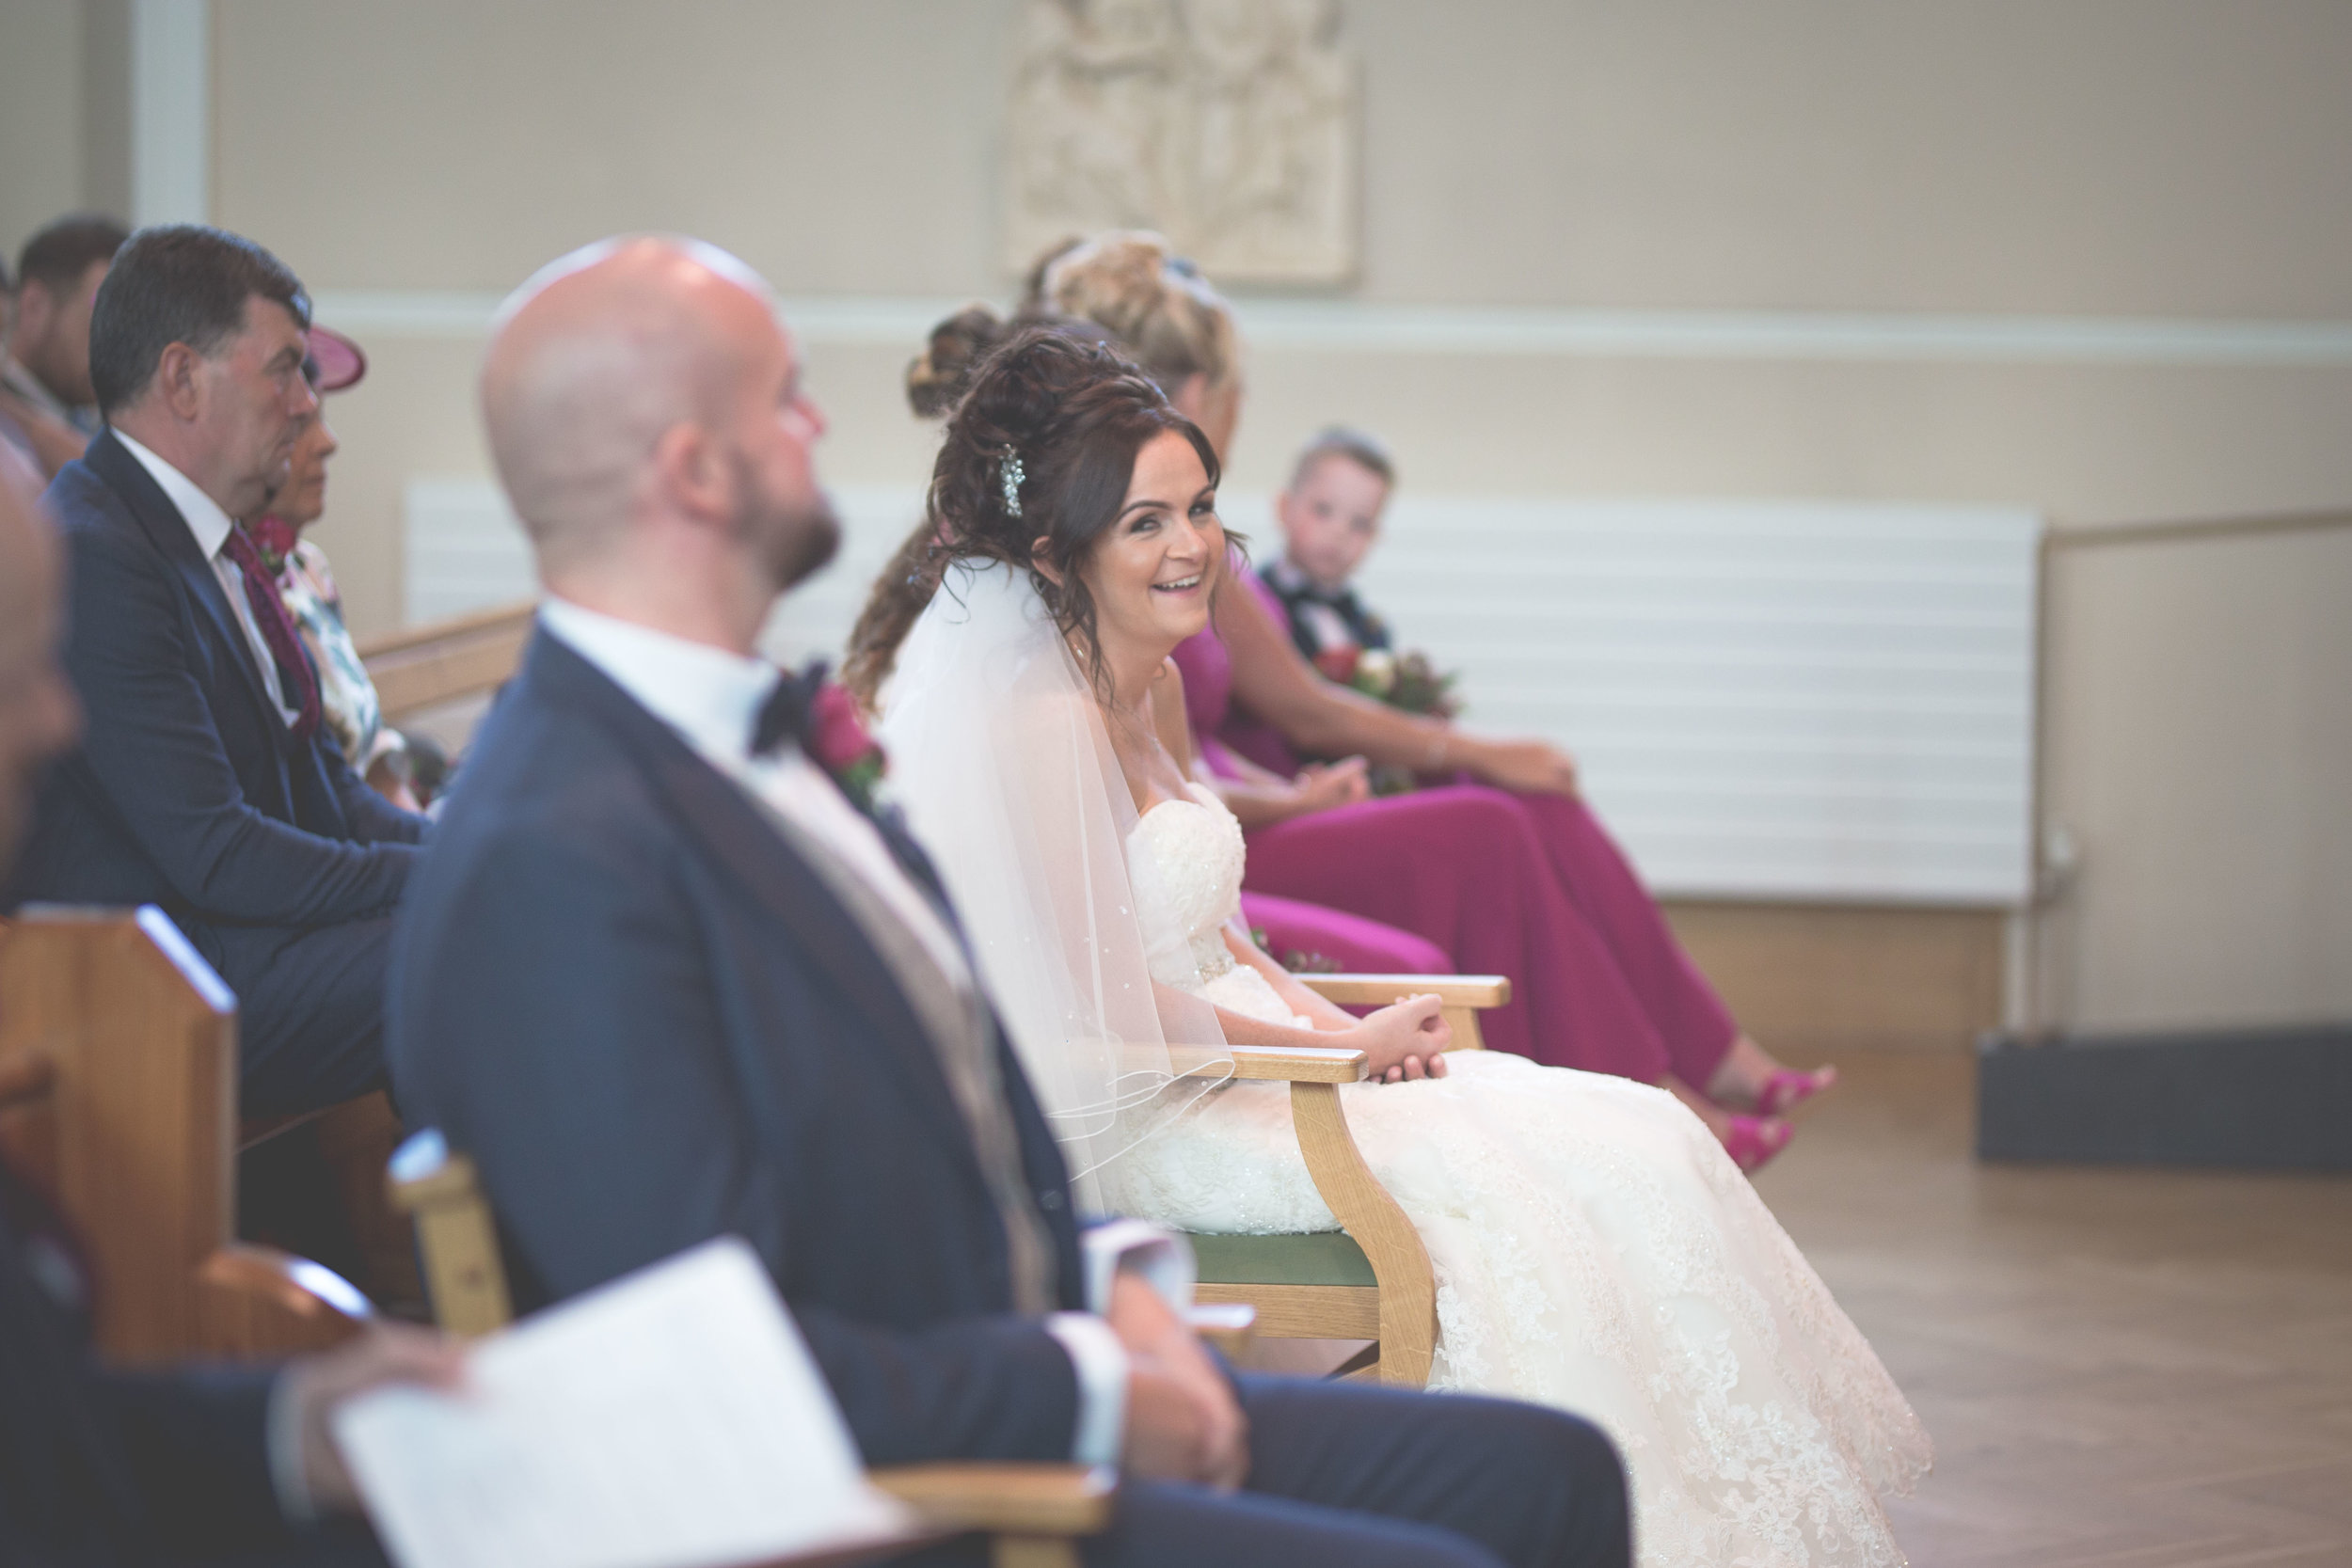 Aisling & Andy - Ceremony-63.jpg